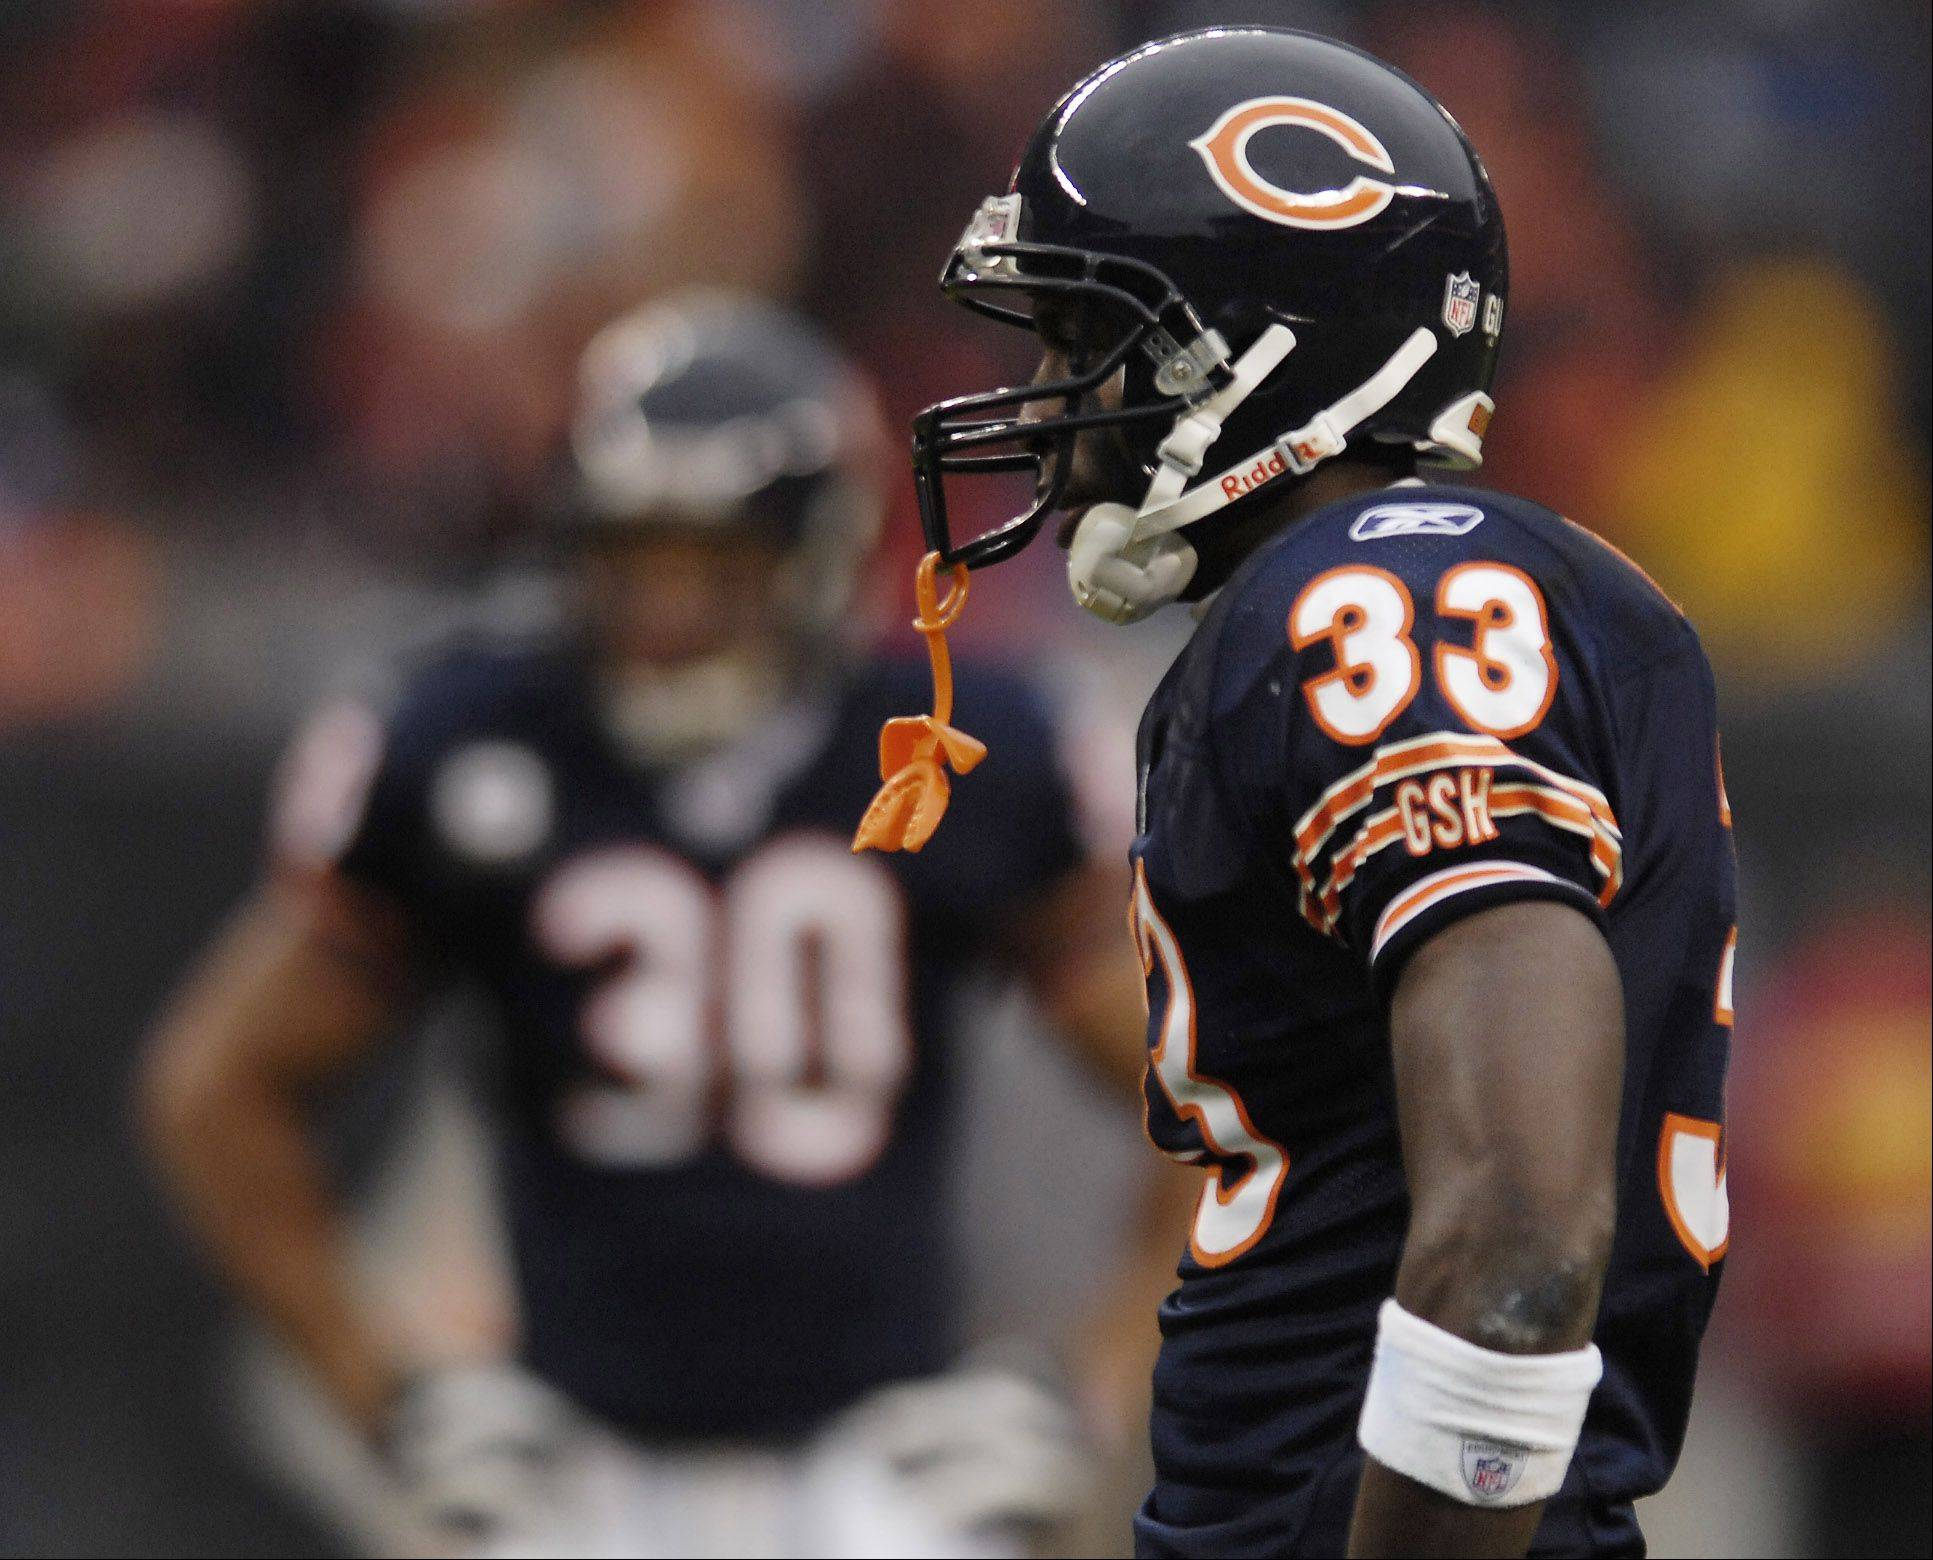 Bears cornerback Charles �Peanut� Tillman was named Walter Payton man of the Year at the Associated Press NFL Awards Saturday night in New York.